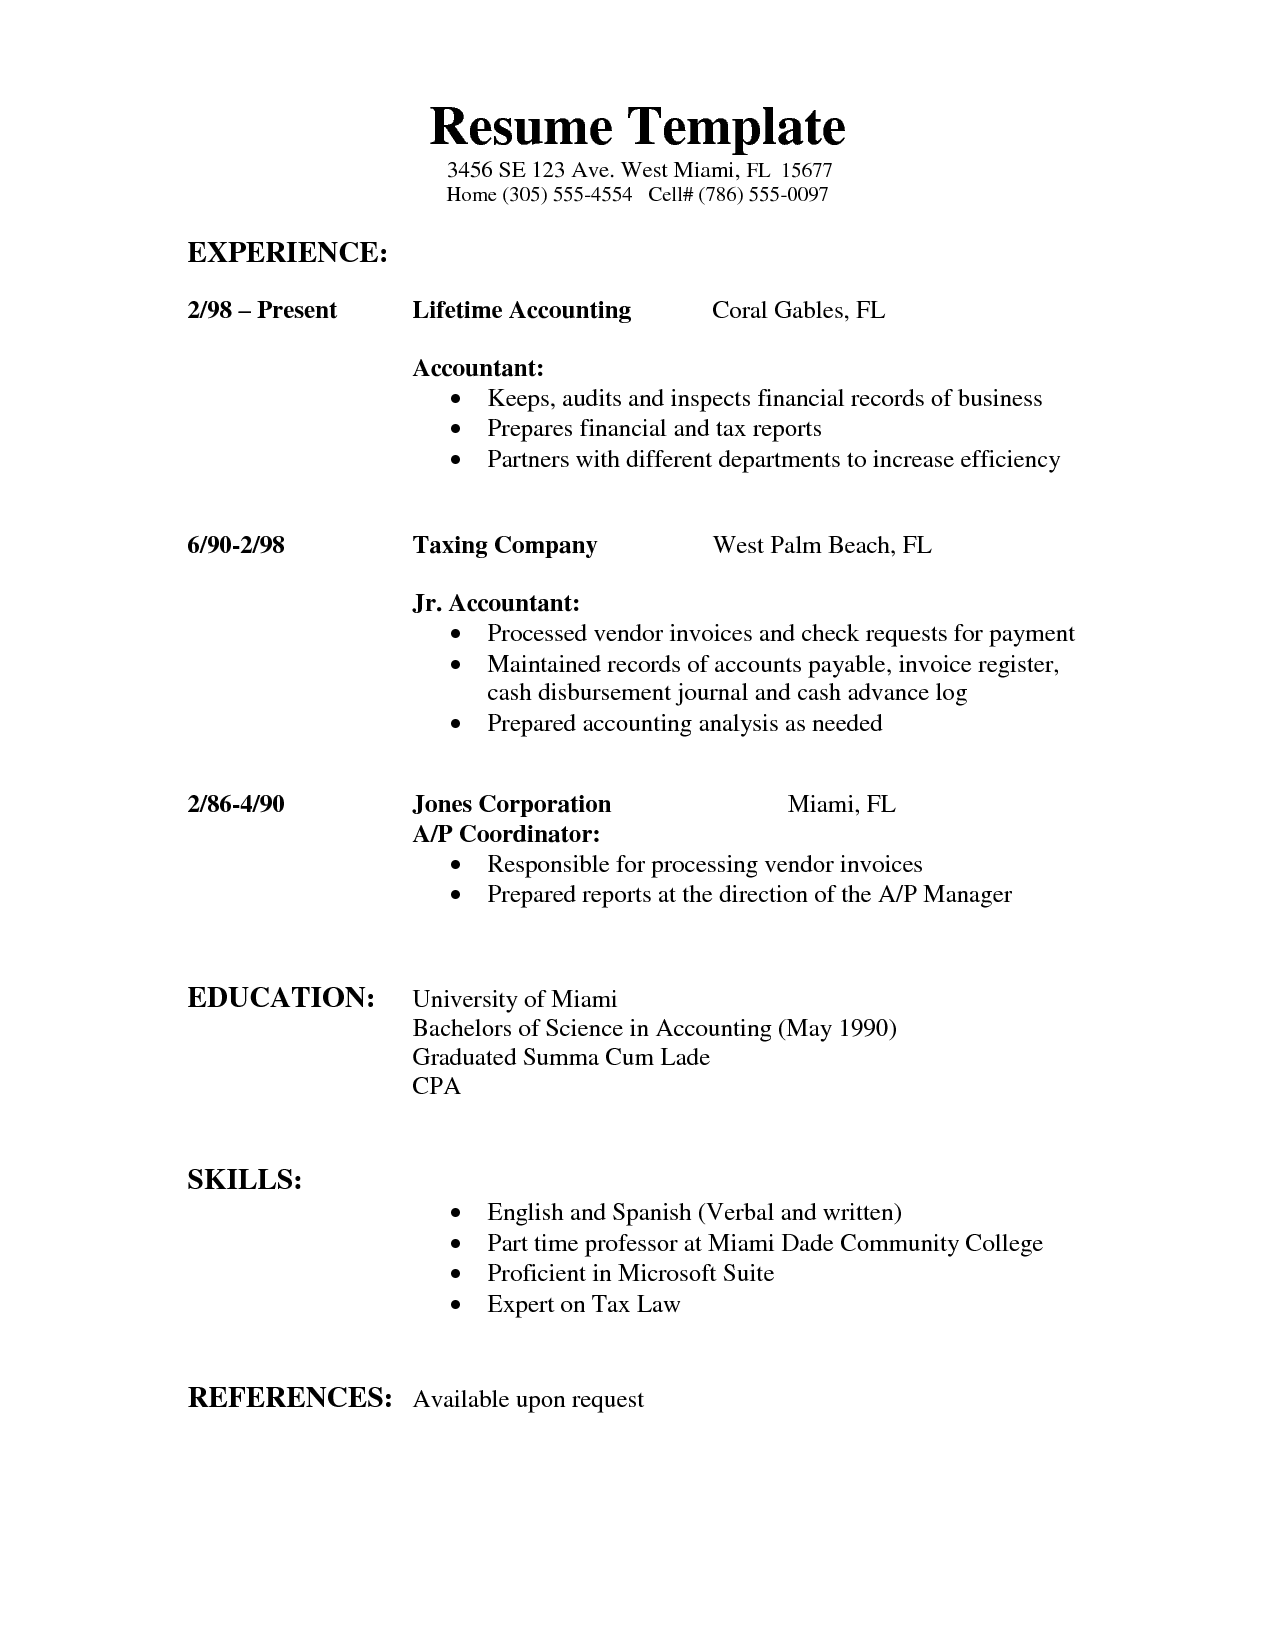 Resumes | Resume Examples | Projects To Try | Pinterest | Resume